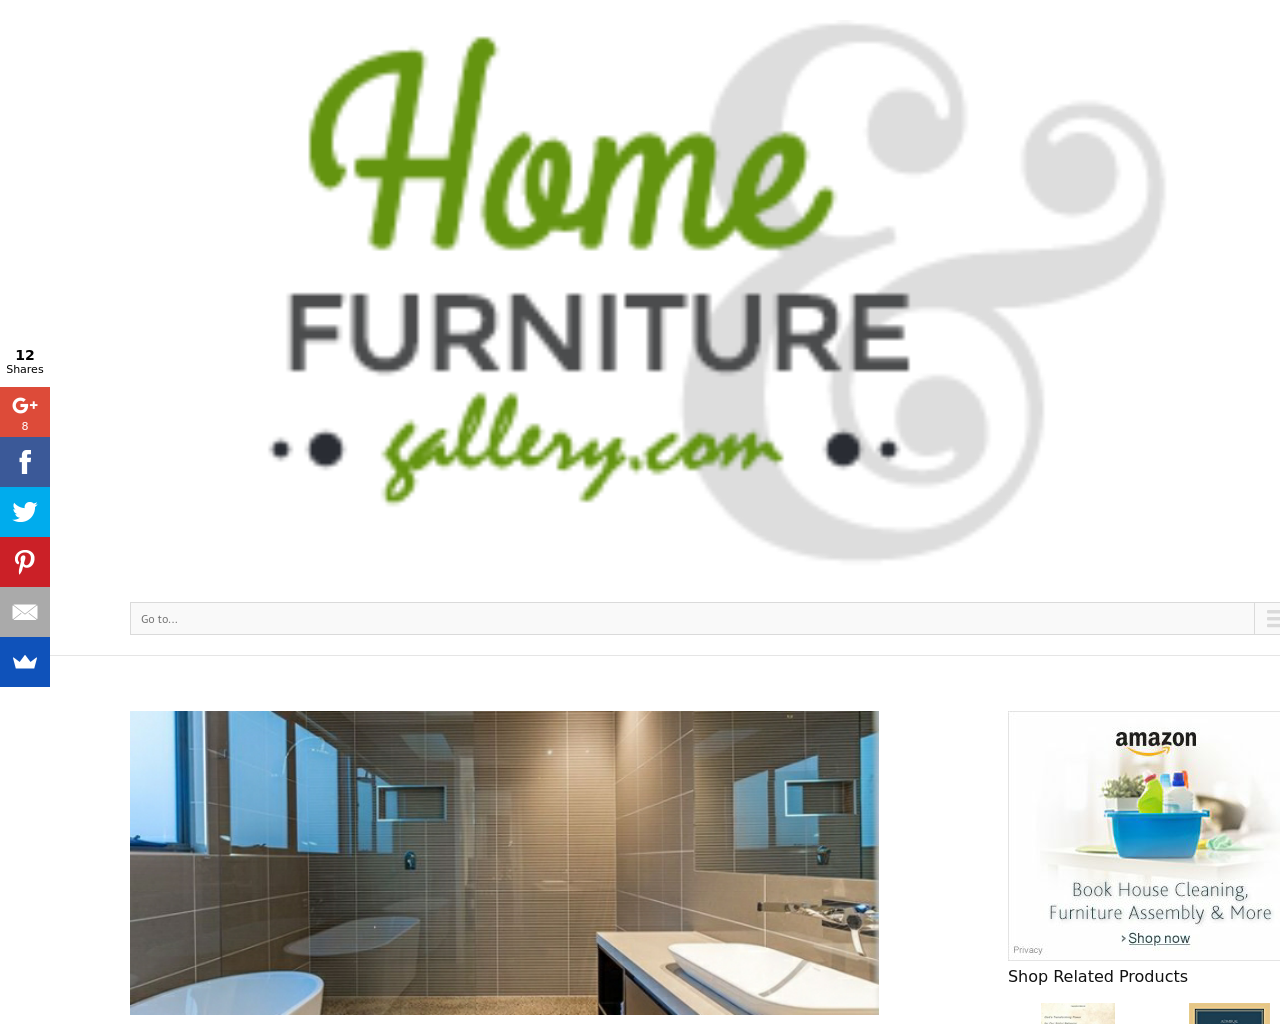 Home-And-Furniture-Gallery-Advertising-Reviews-Pricing